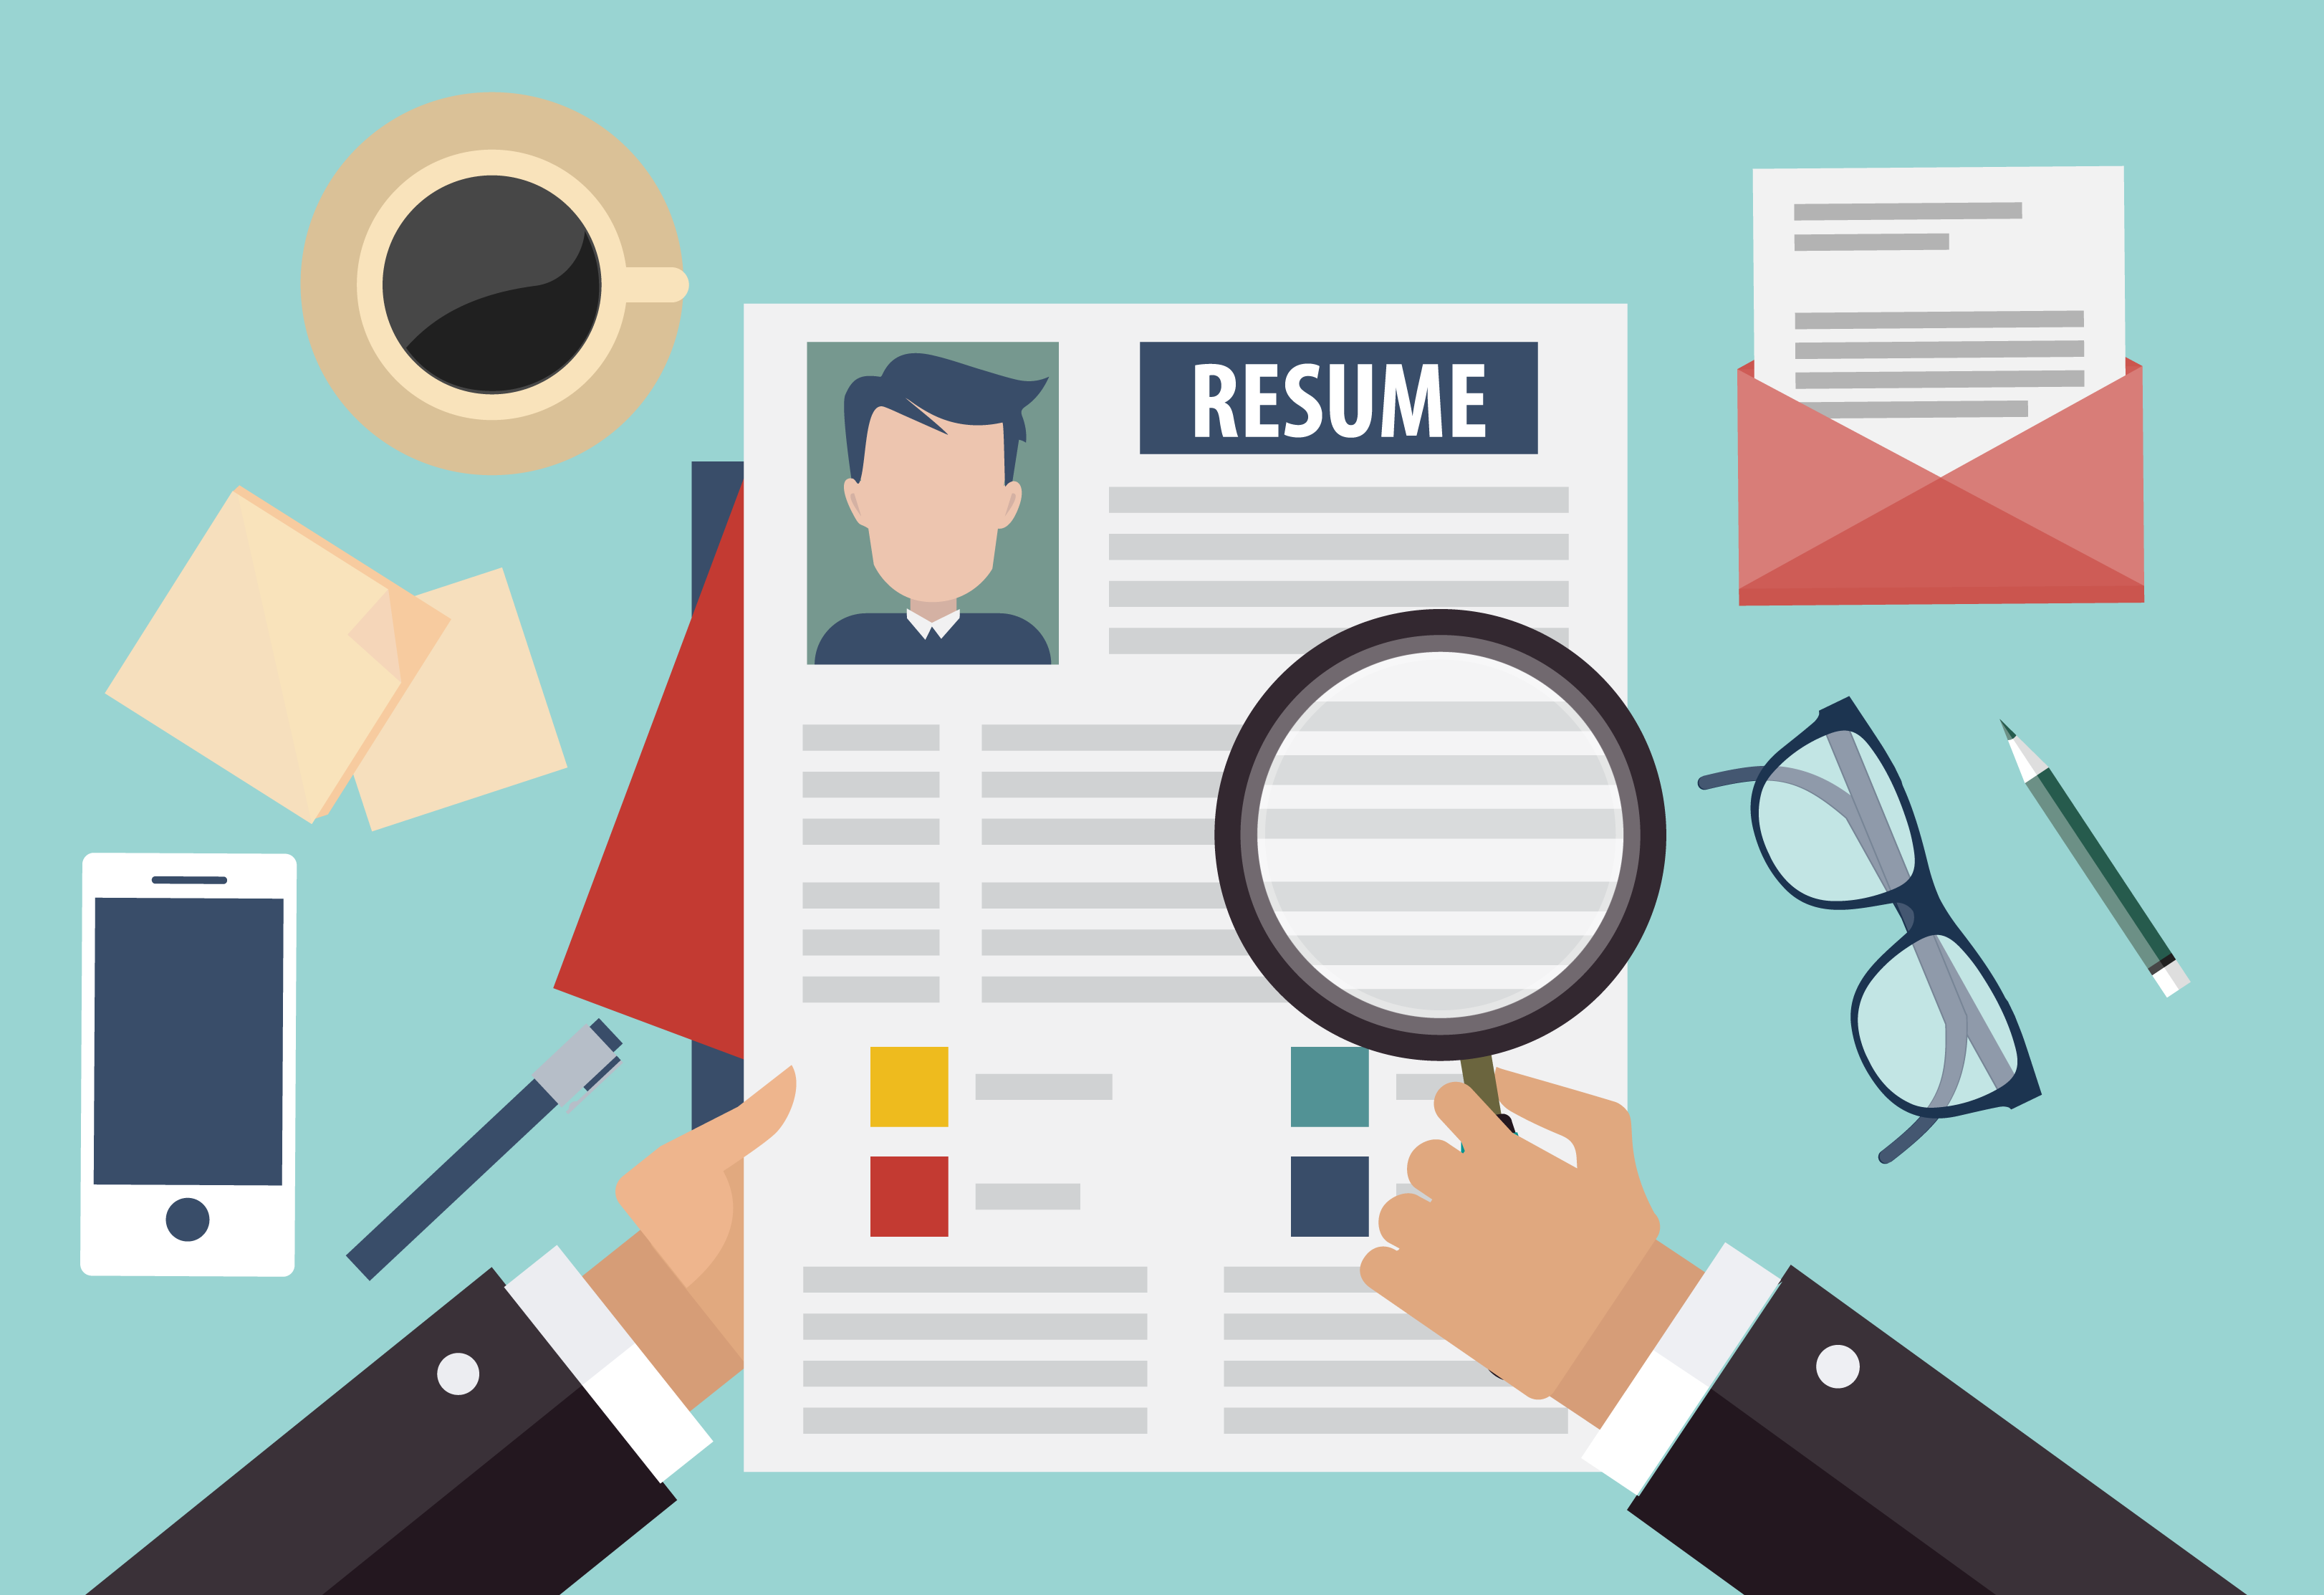 Human Resources and Hiring Best Practices | Image - Searching for ...